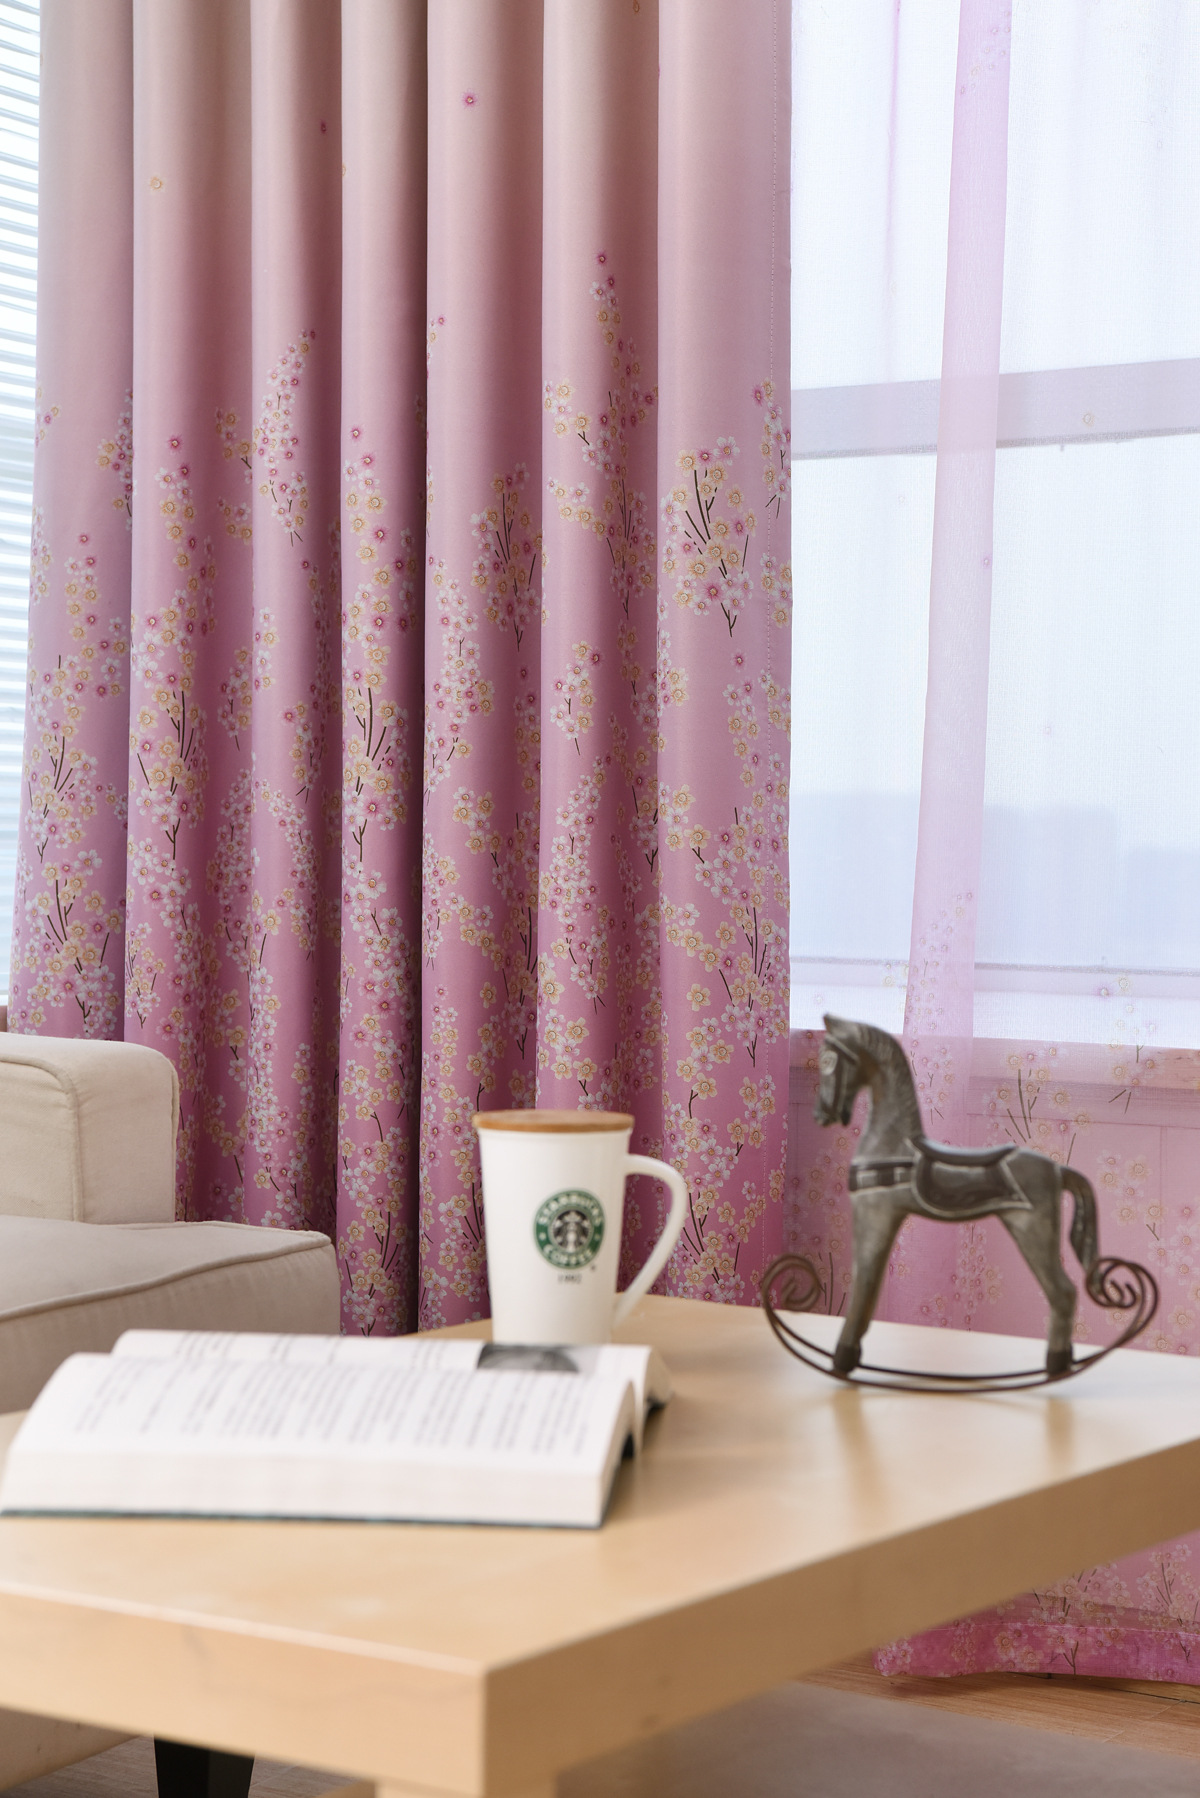 Pink Living Room Curtains Us 12 Slow Soul Pink Blue Pastoral Bedroom Living Room Curtain Lavender Floral French Window Tulle Curtains Printed For Kitchen 3d In Curtains